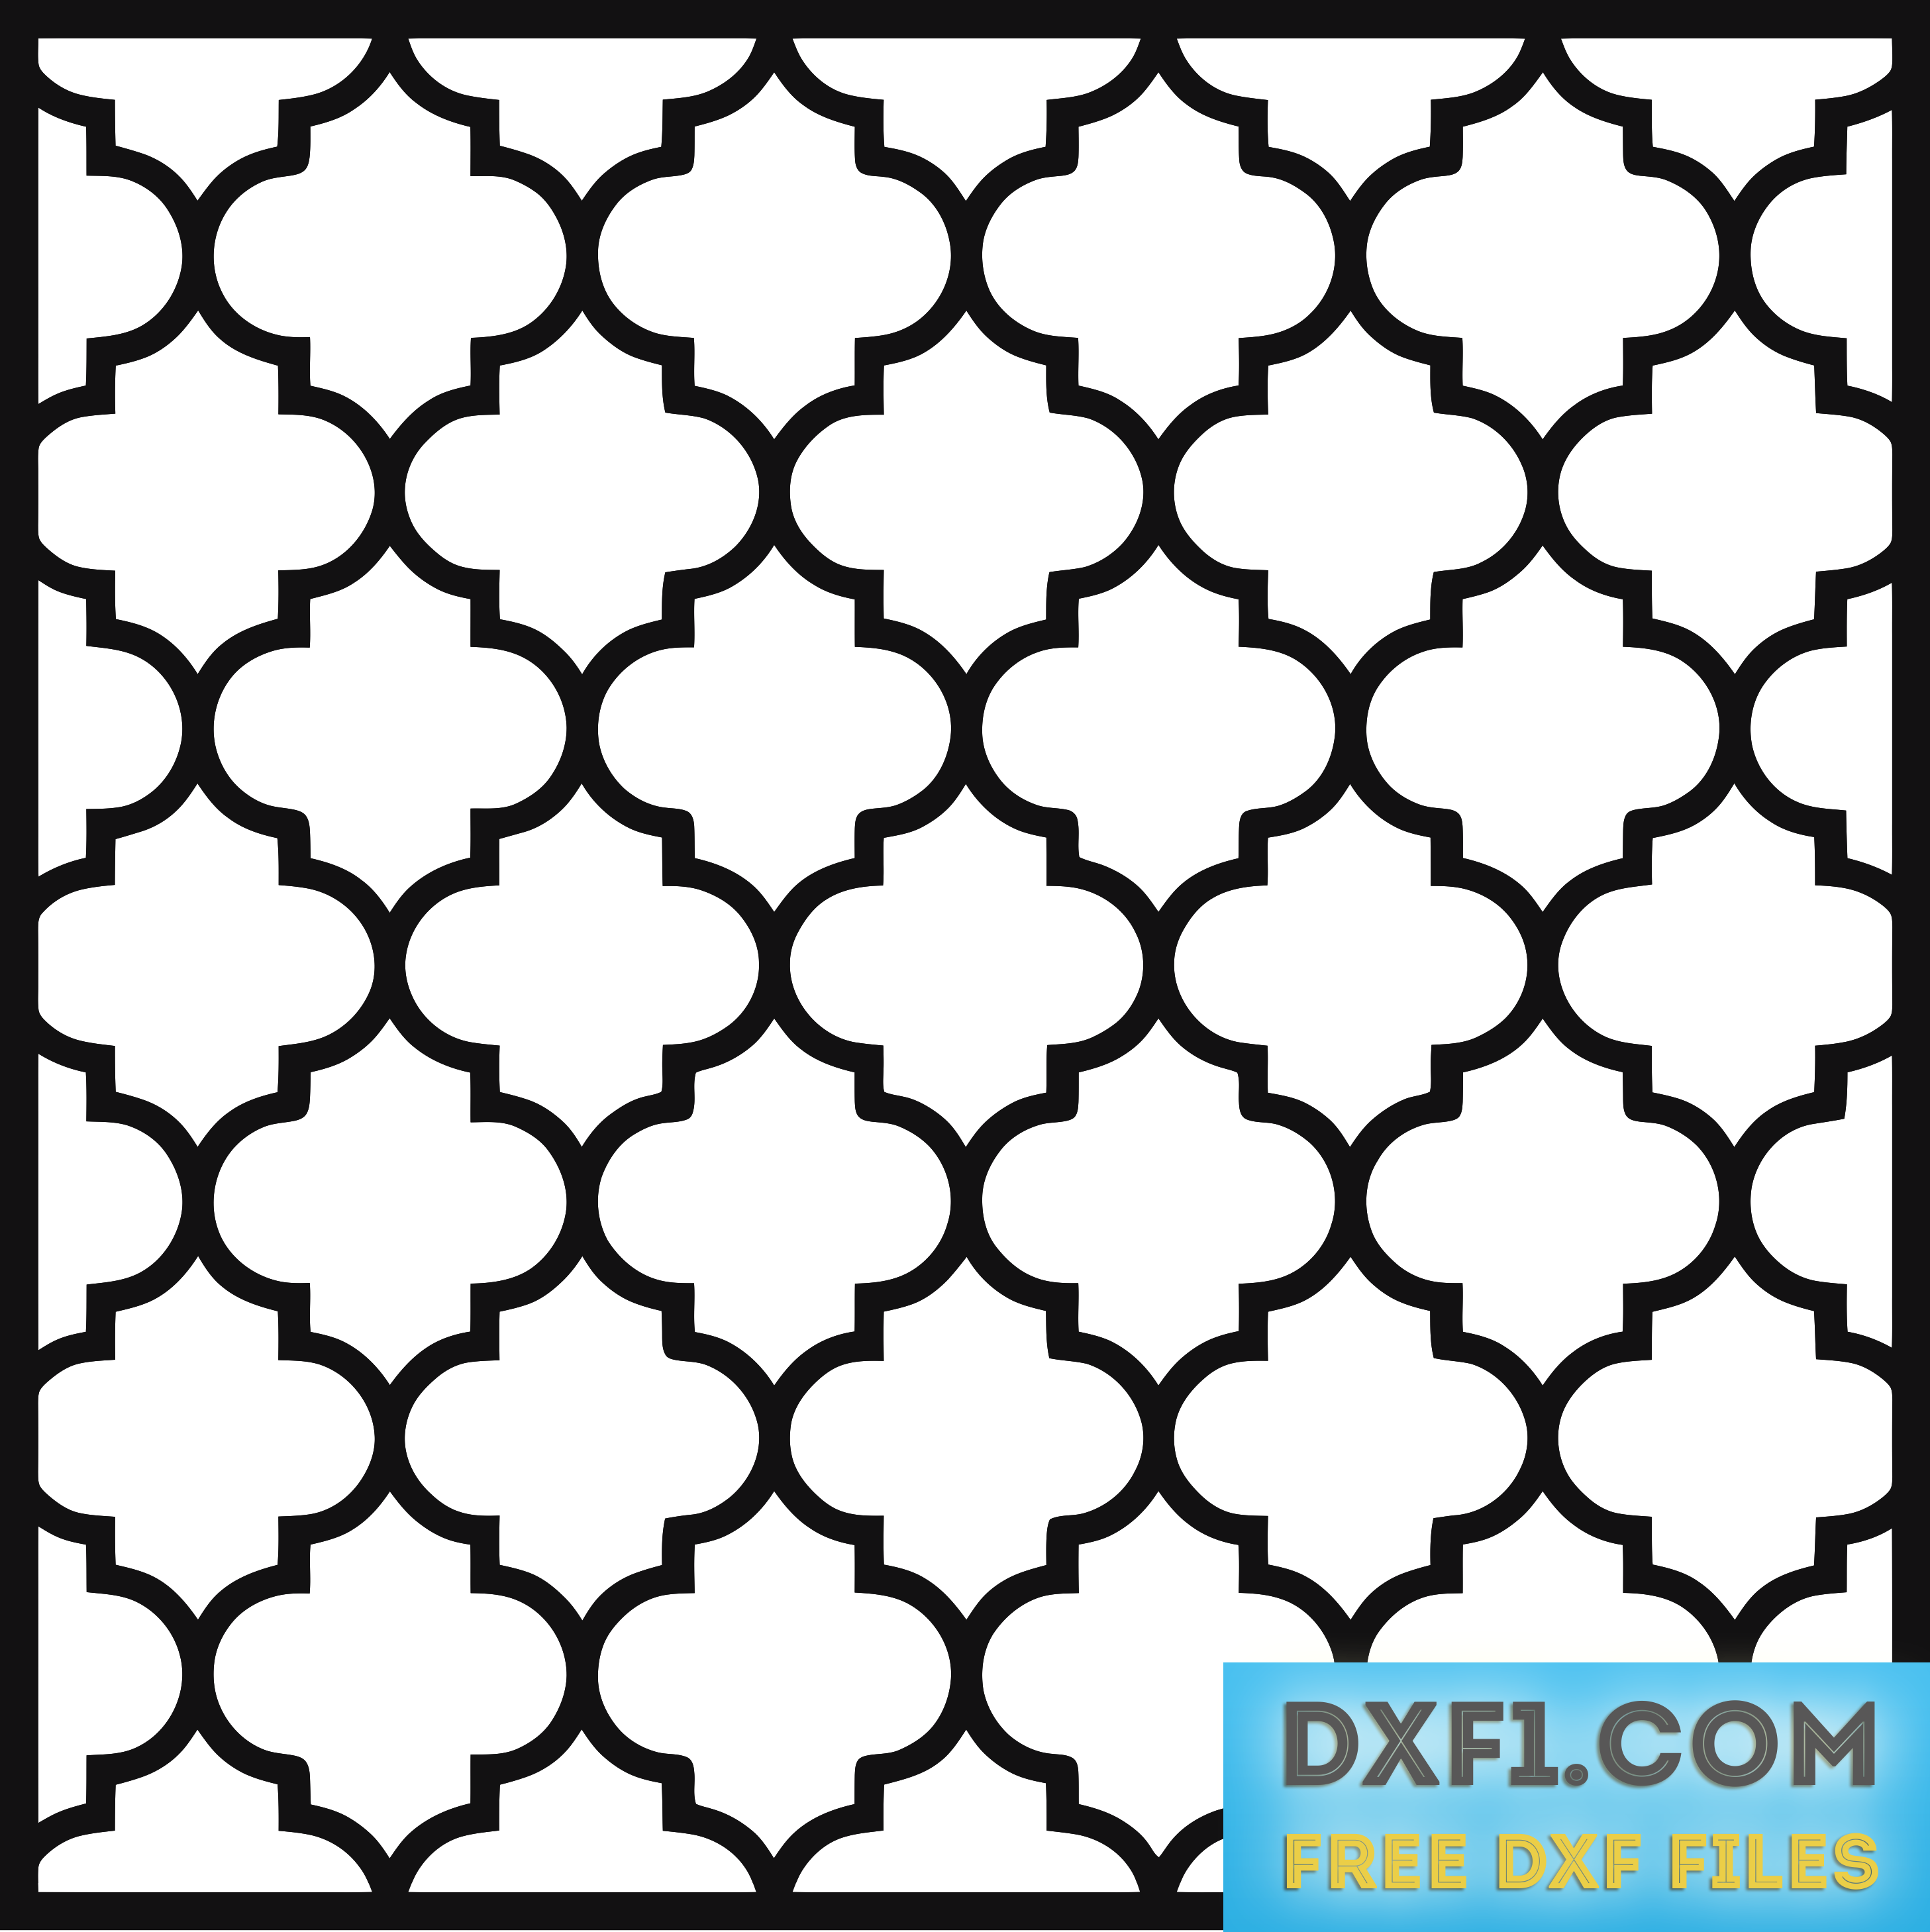 moroccan pattern cnc free dxf files free cad software